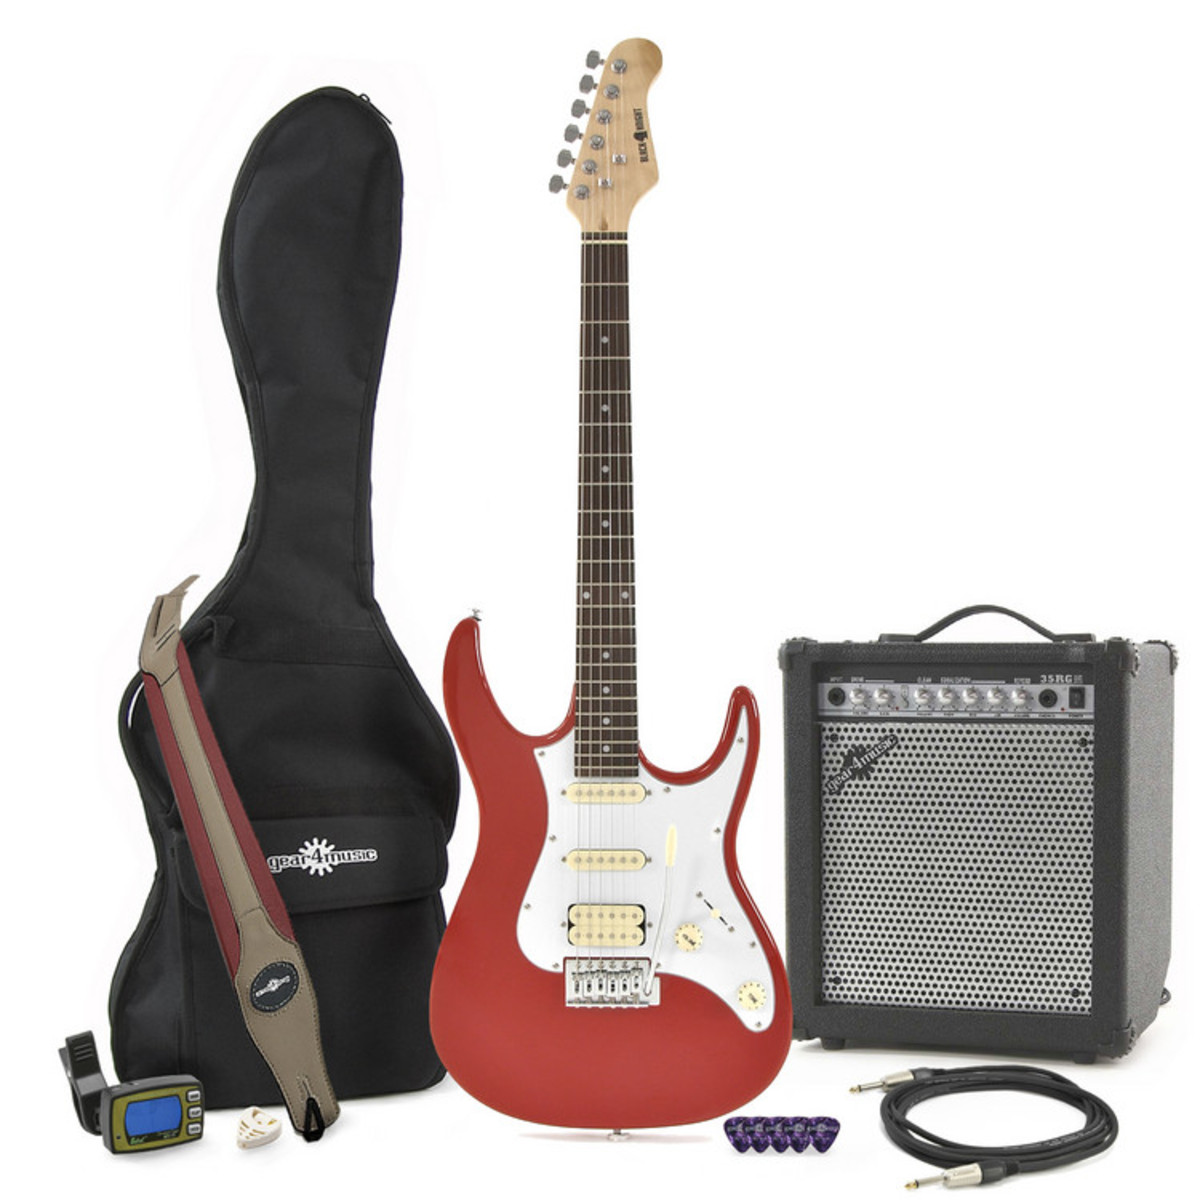 Black Knight Cst 20 Electric Guitar Red 35w Amp Pack At